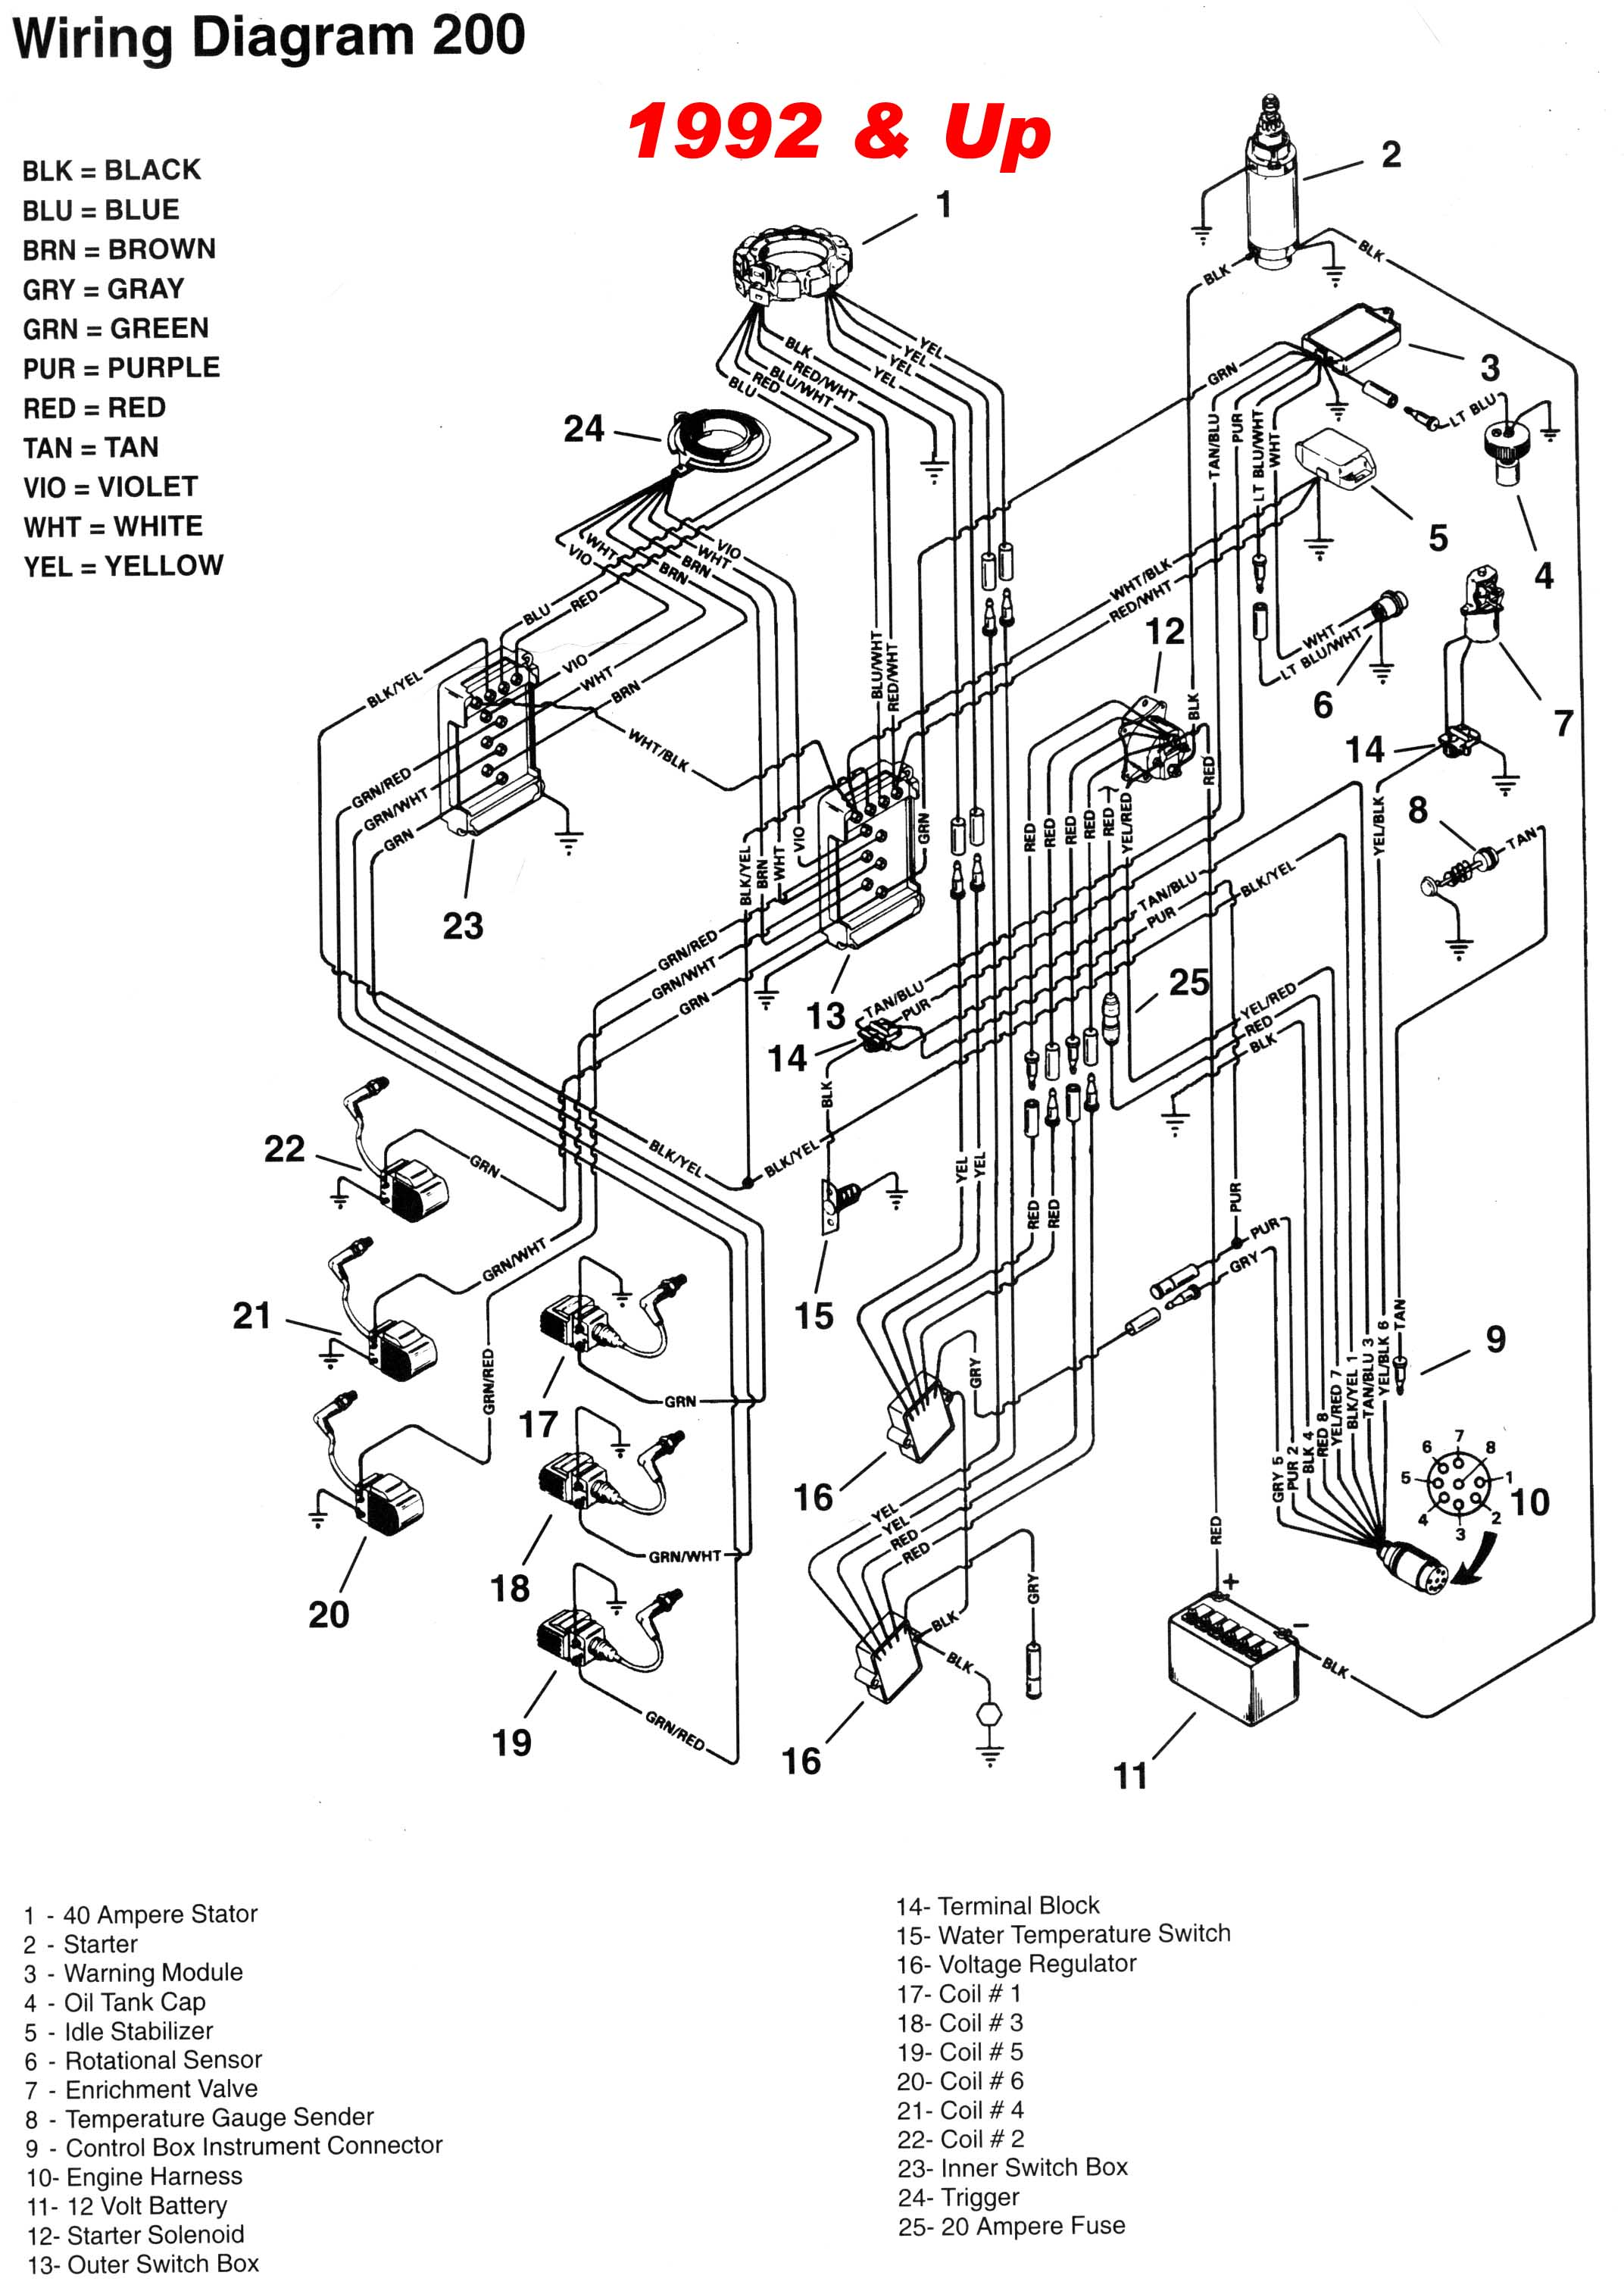 Mercruiser Trim System Wiring Diagram Wiring Library Mopar Neutral Safety  Switch Wiring Diagram 3 0 Mercruiser Trim Wiring Diagram